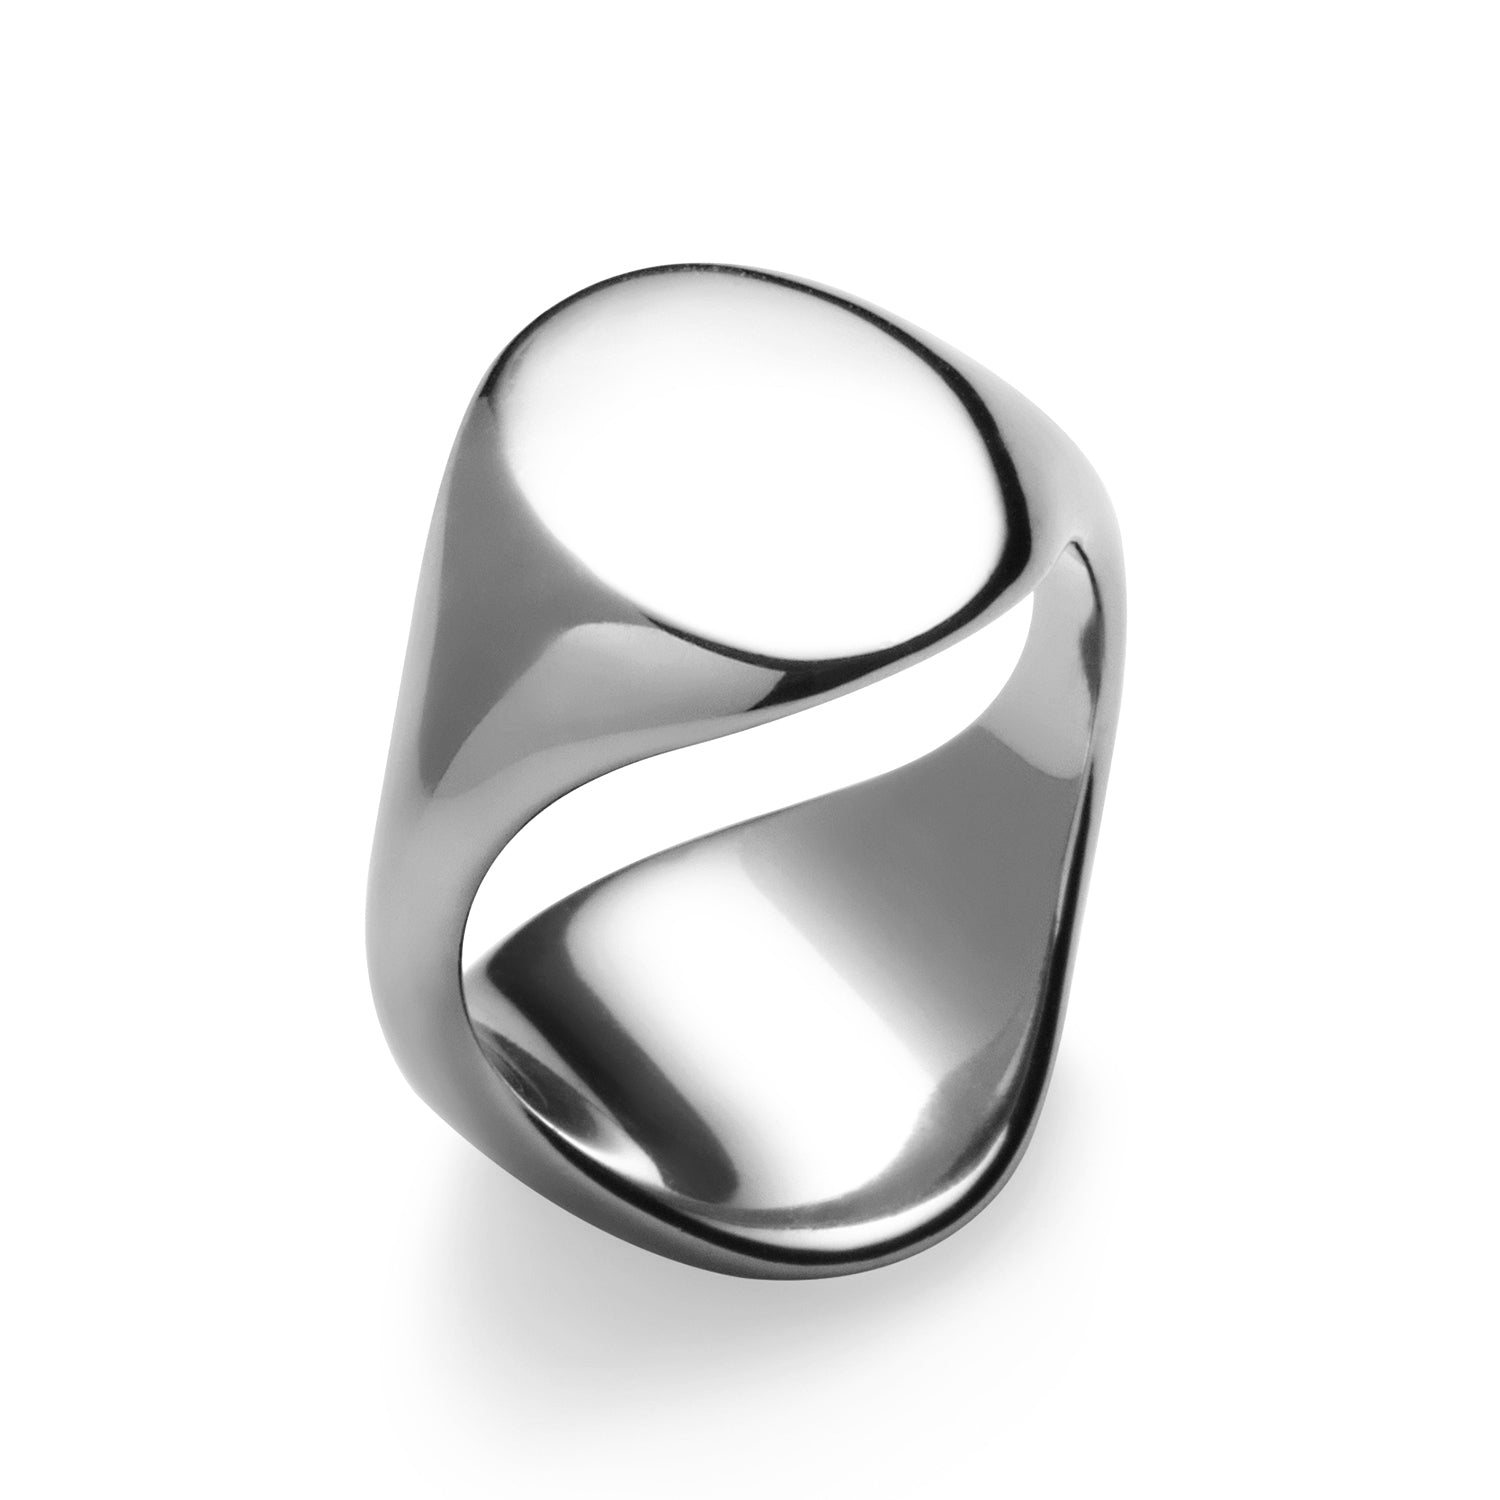 J. HARDYMENT - TWO FACE RING